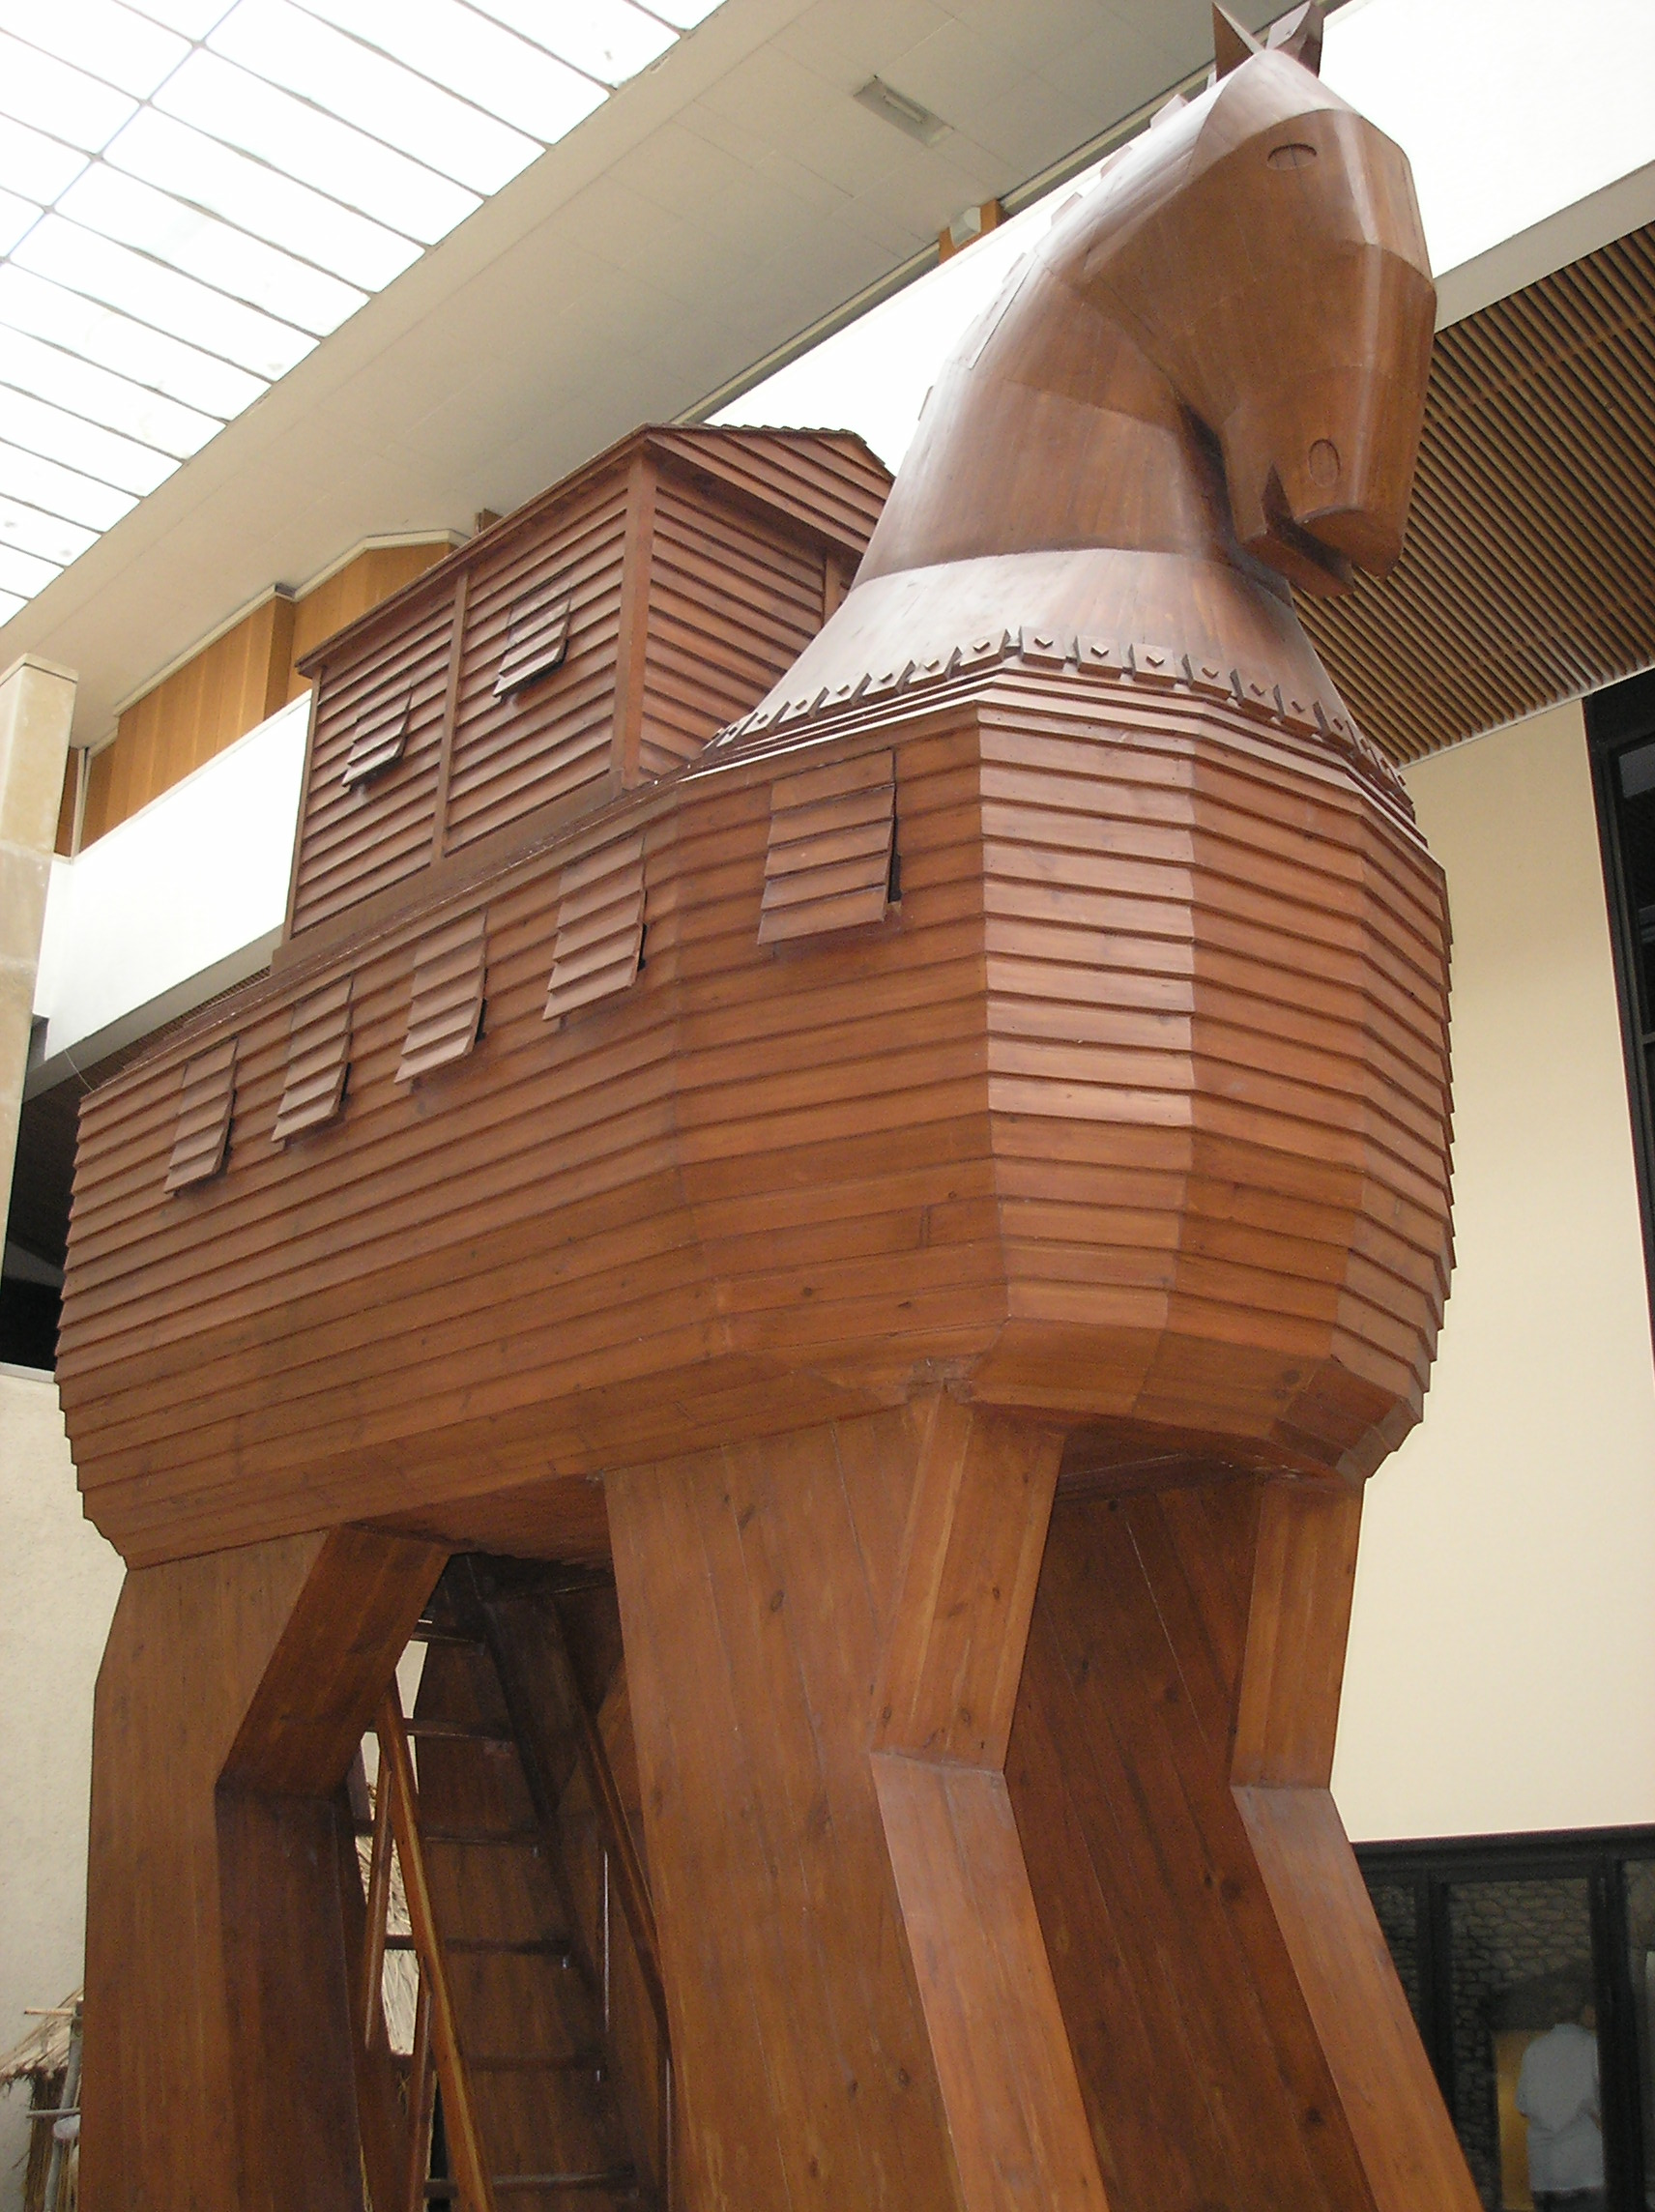 Trojan horse. Istambul Museum of Archaeology - Picture taken by deror avi on July 2005.